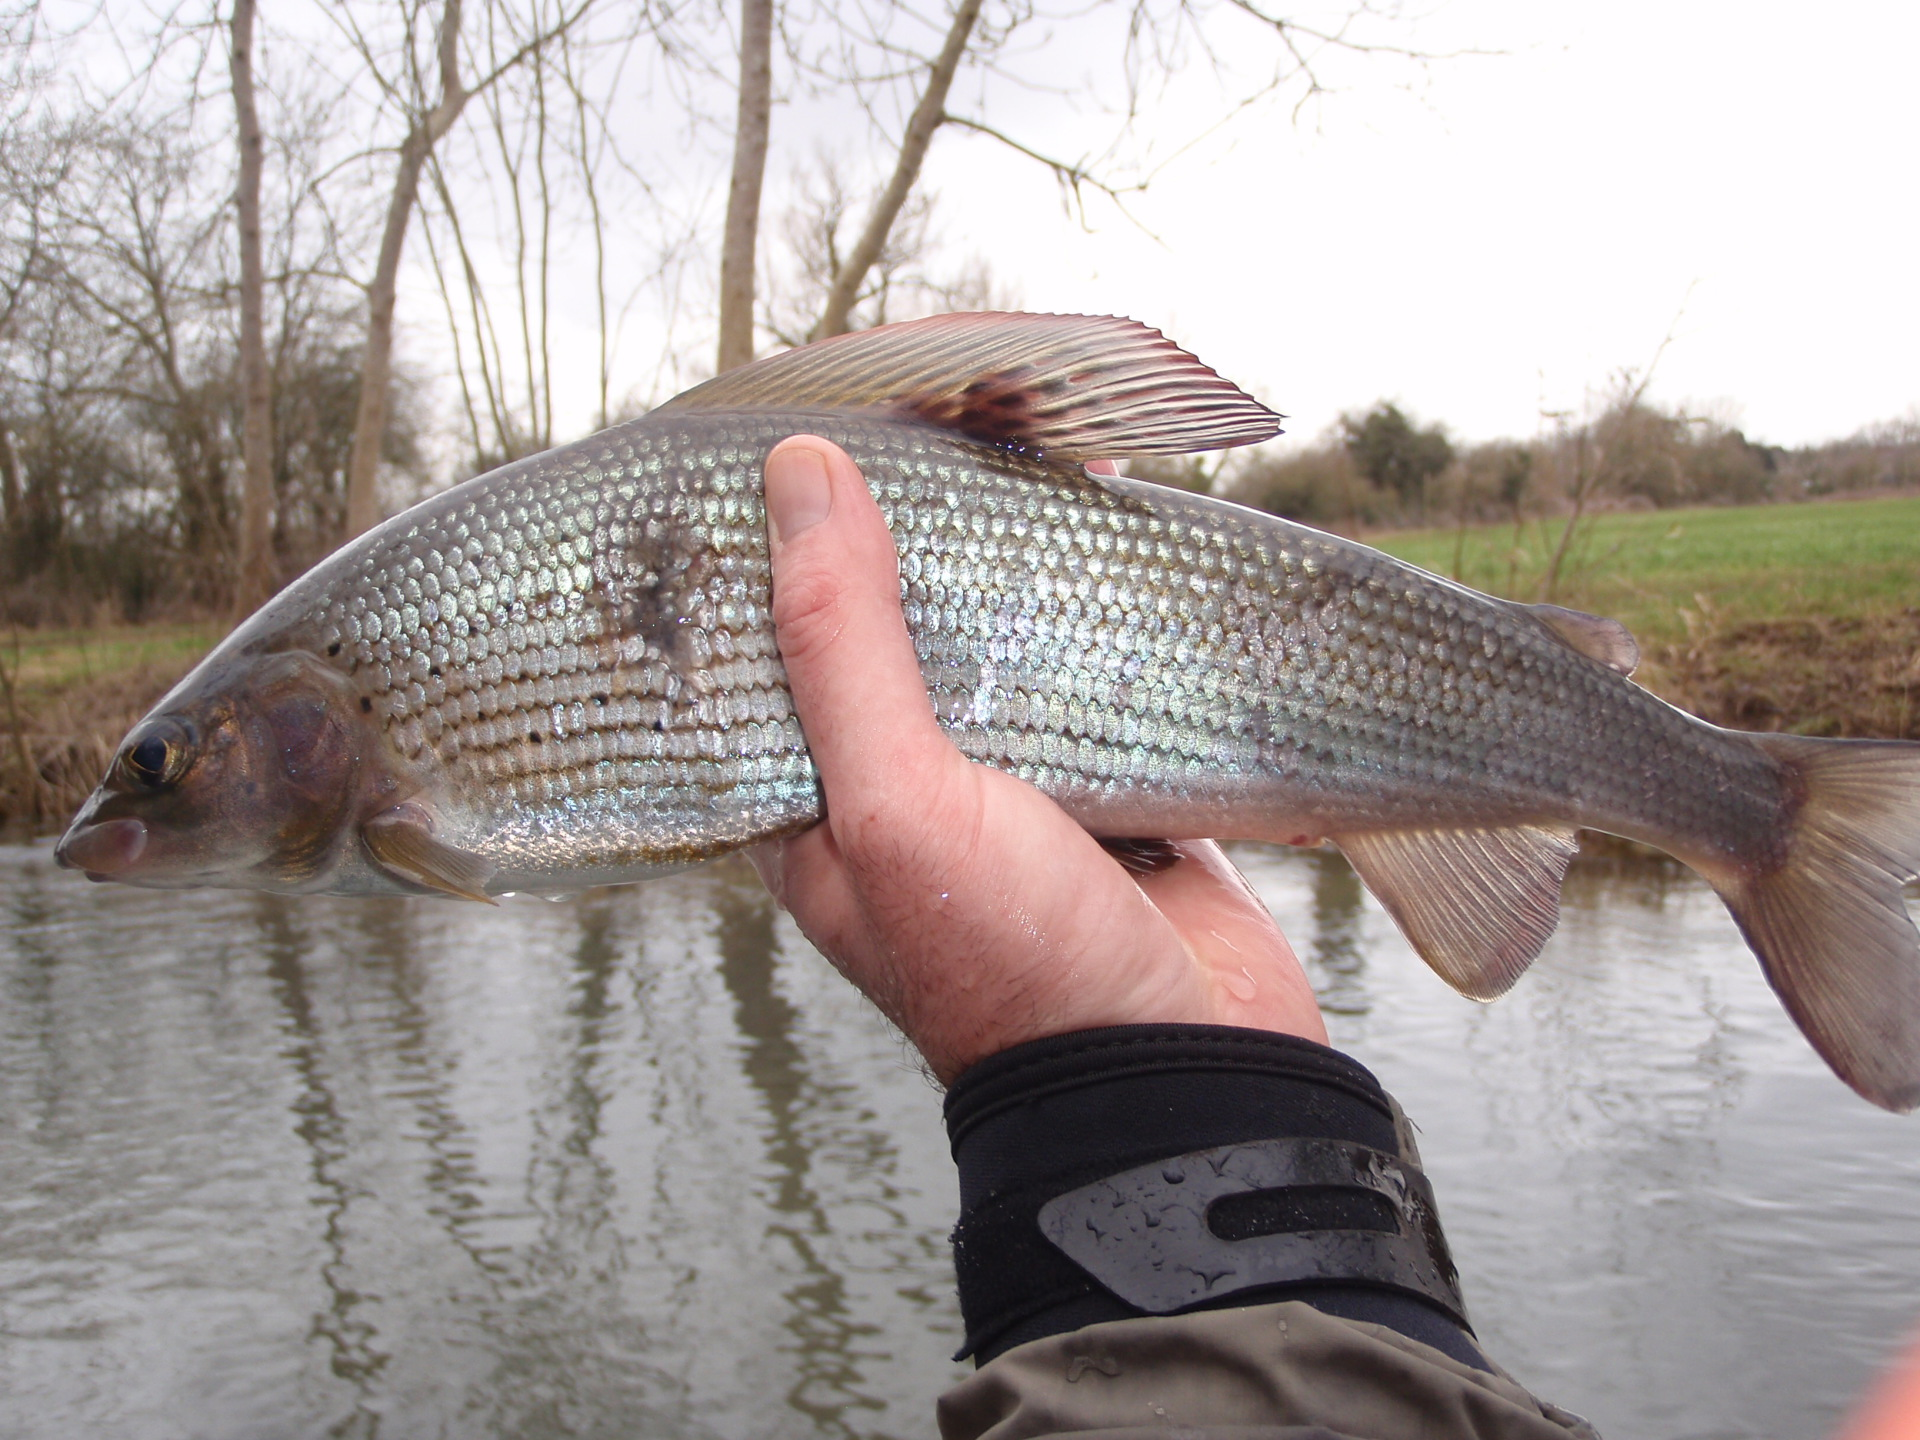 River Coln grayling caught this winter with a Czech nymph